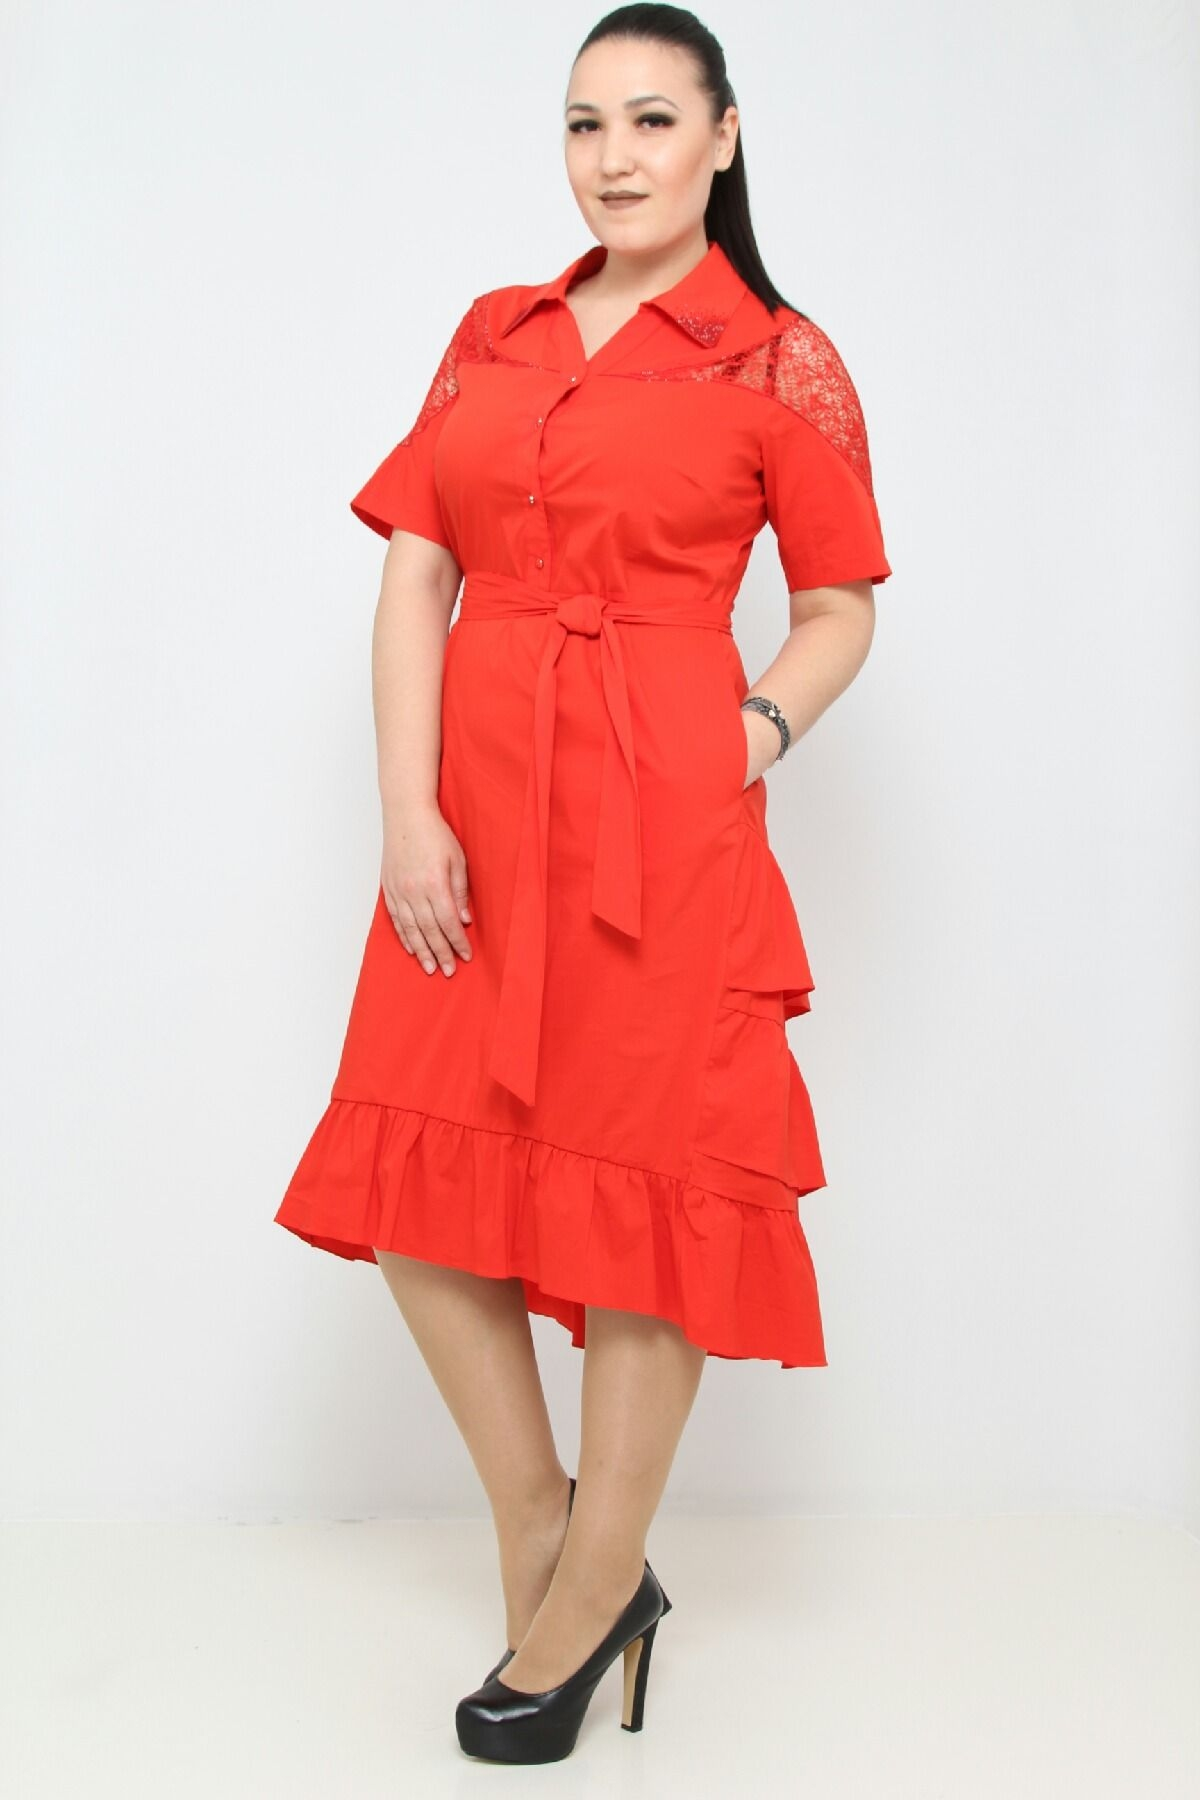 Under knee length party dress with  short sleeves and shoulders with lace, stoned and buttoned neckline, with belt and pockets, asymmetrical skirt with pleated ruffles at back